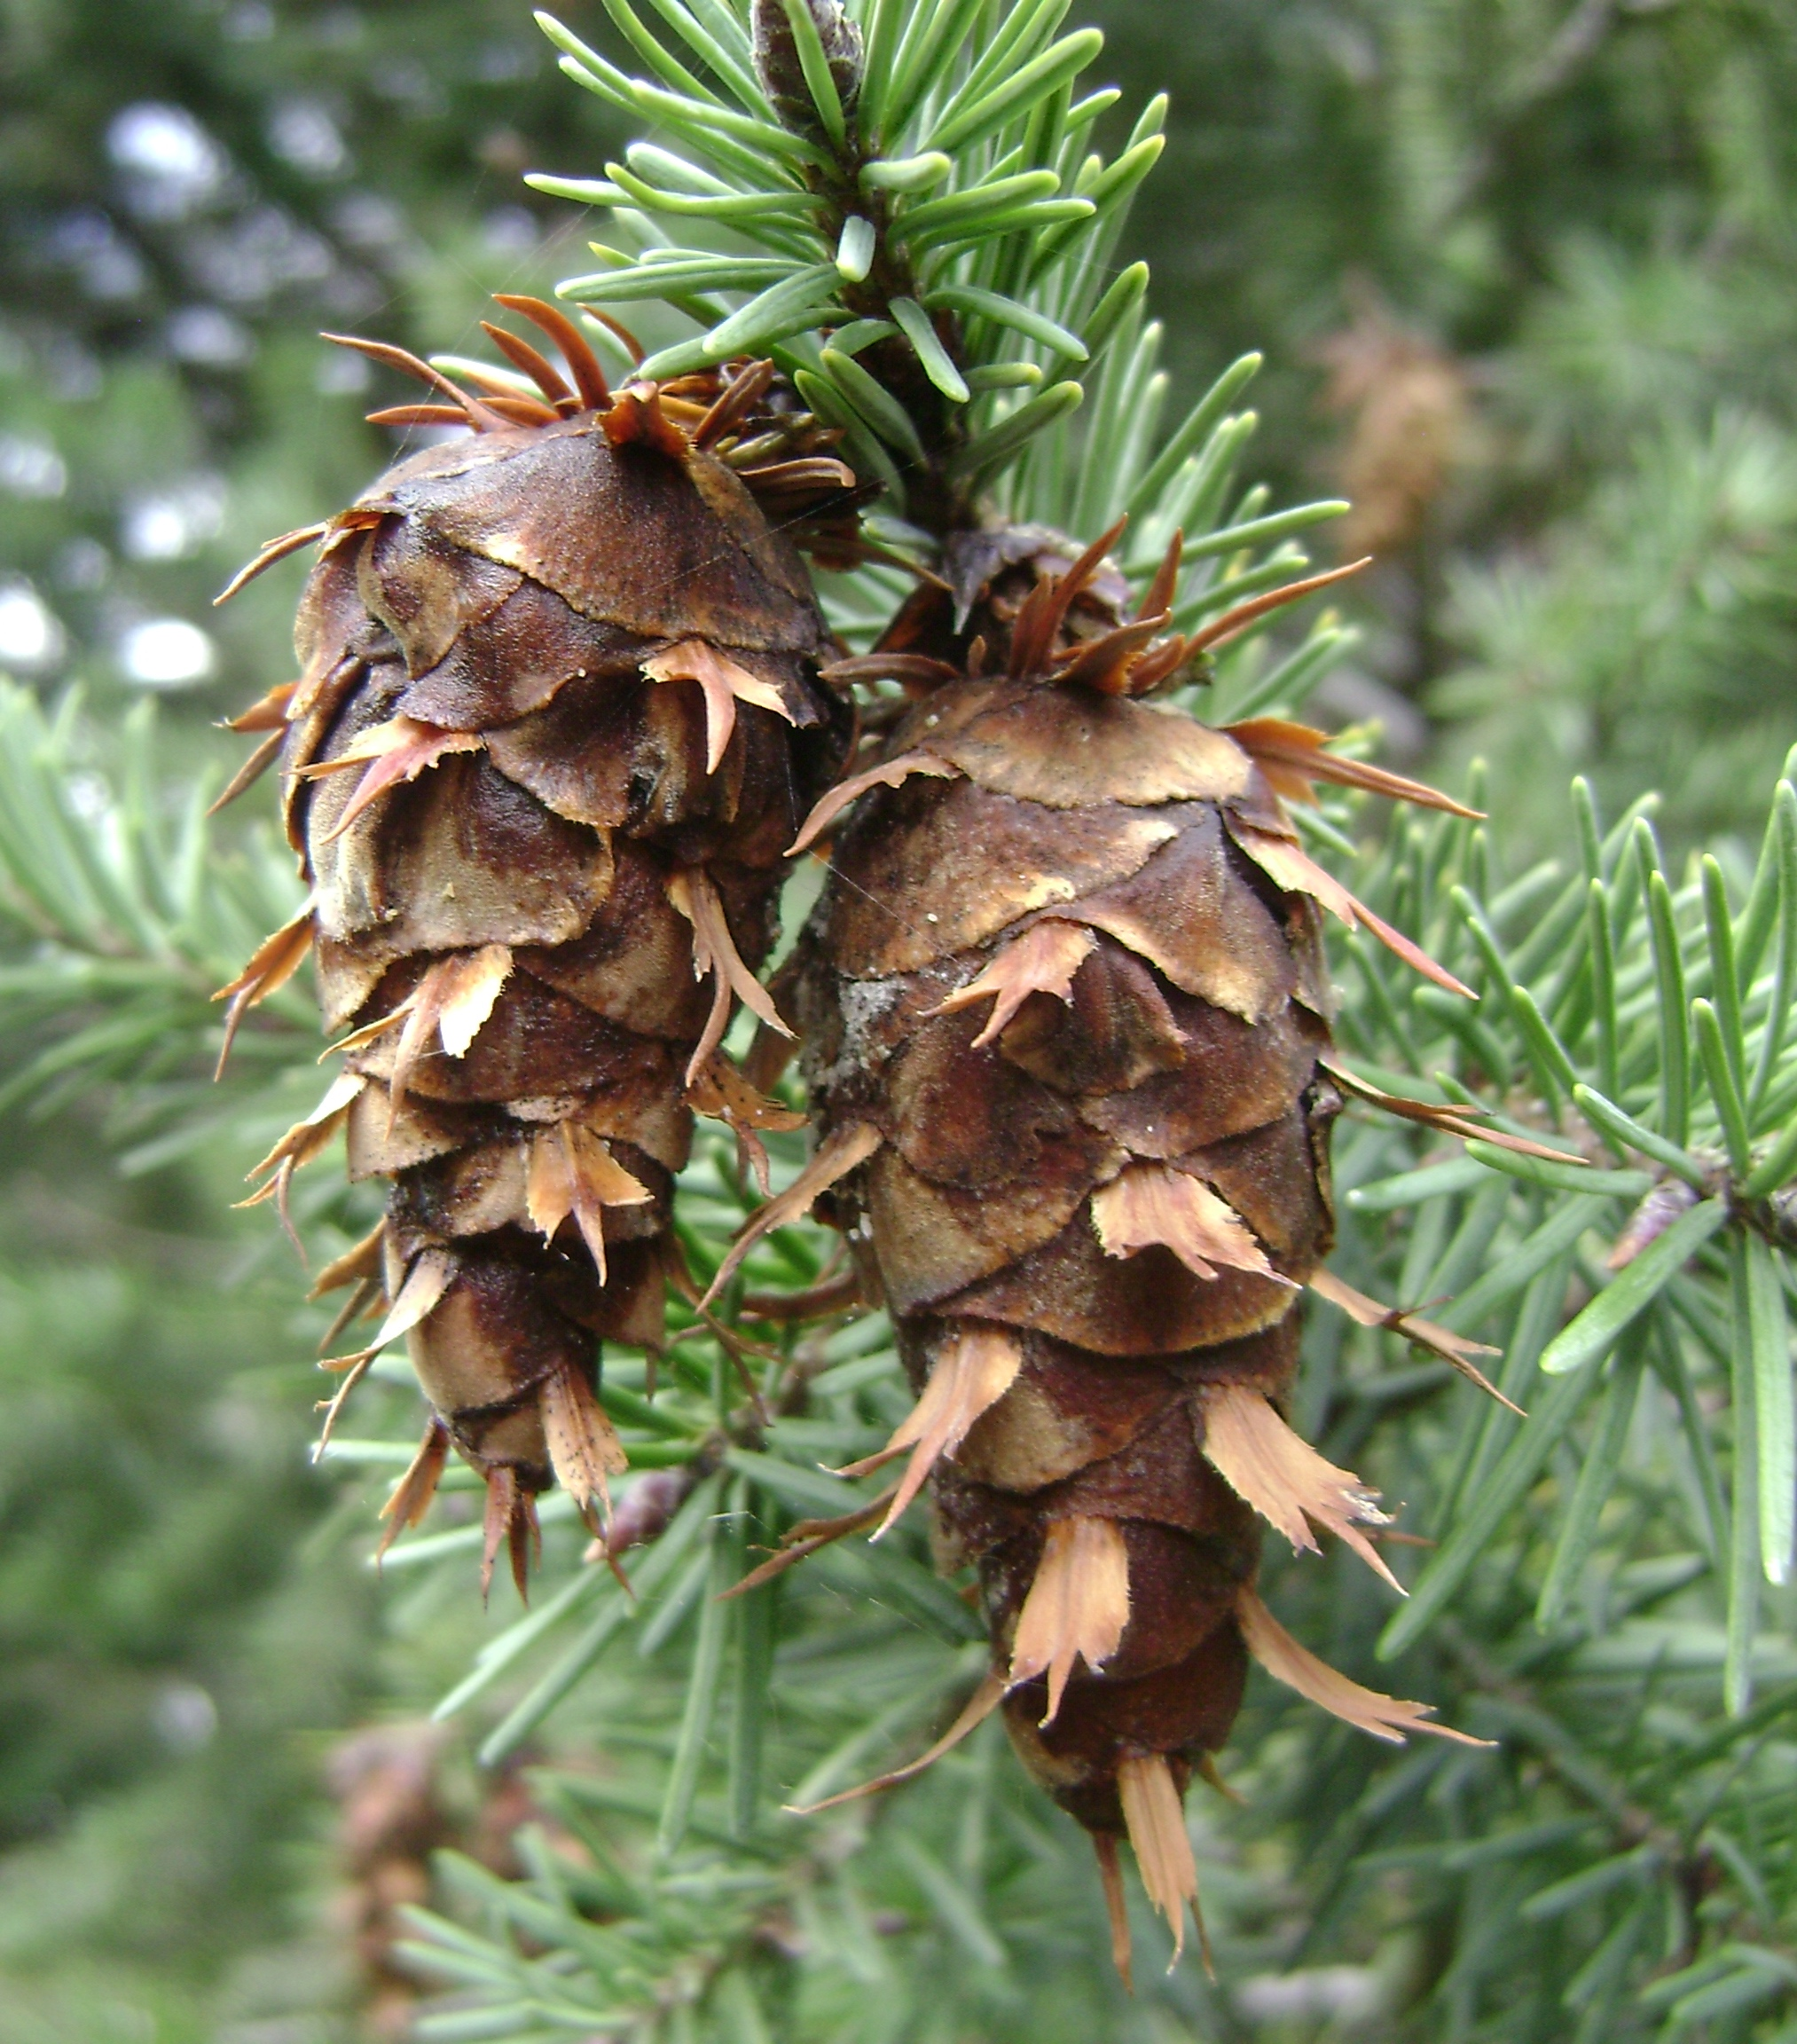 Photograph of a Douglas fir tree's pine cone.